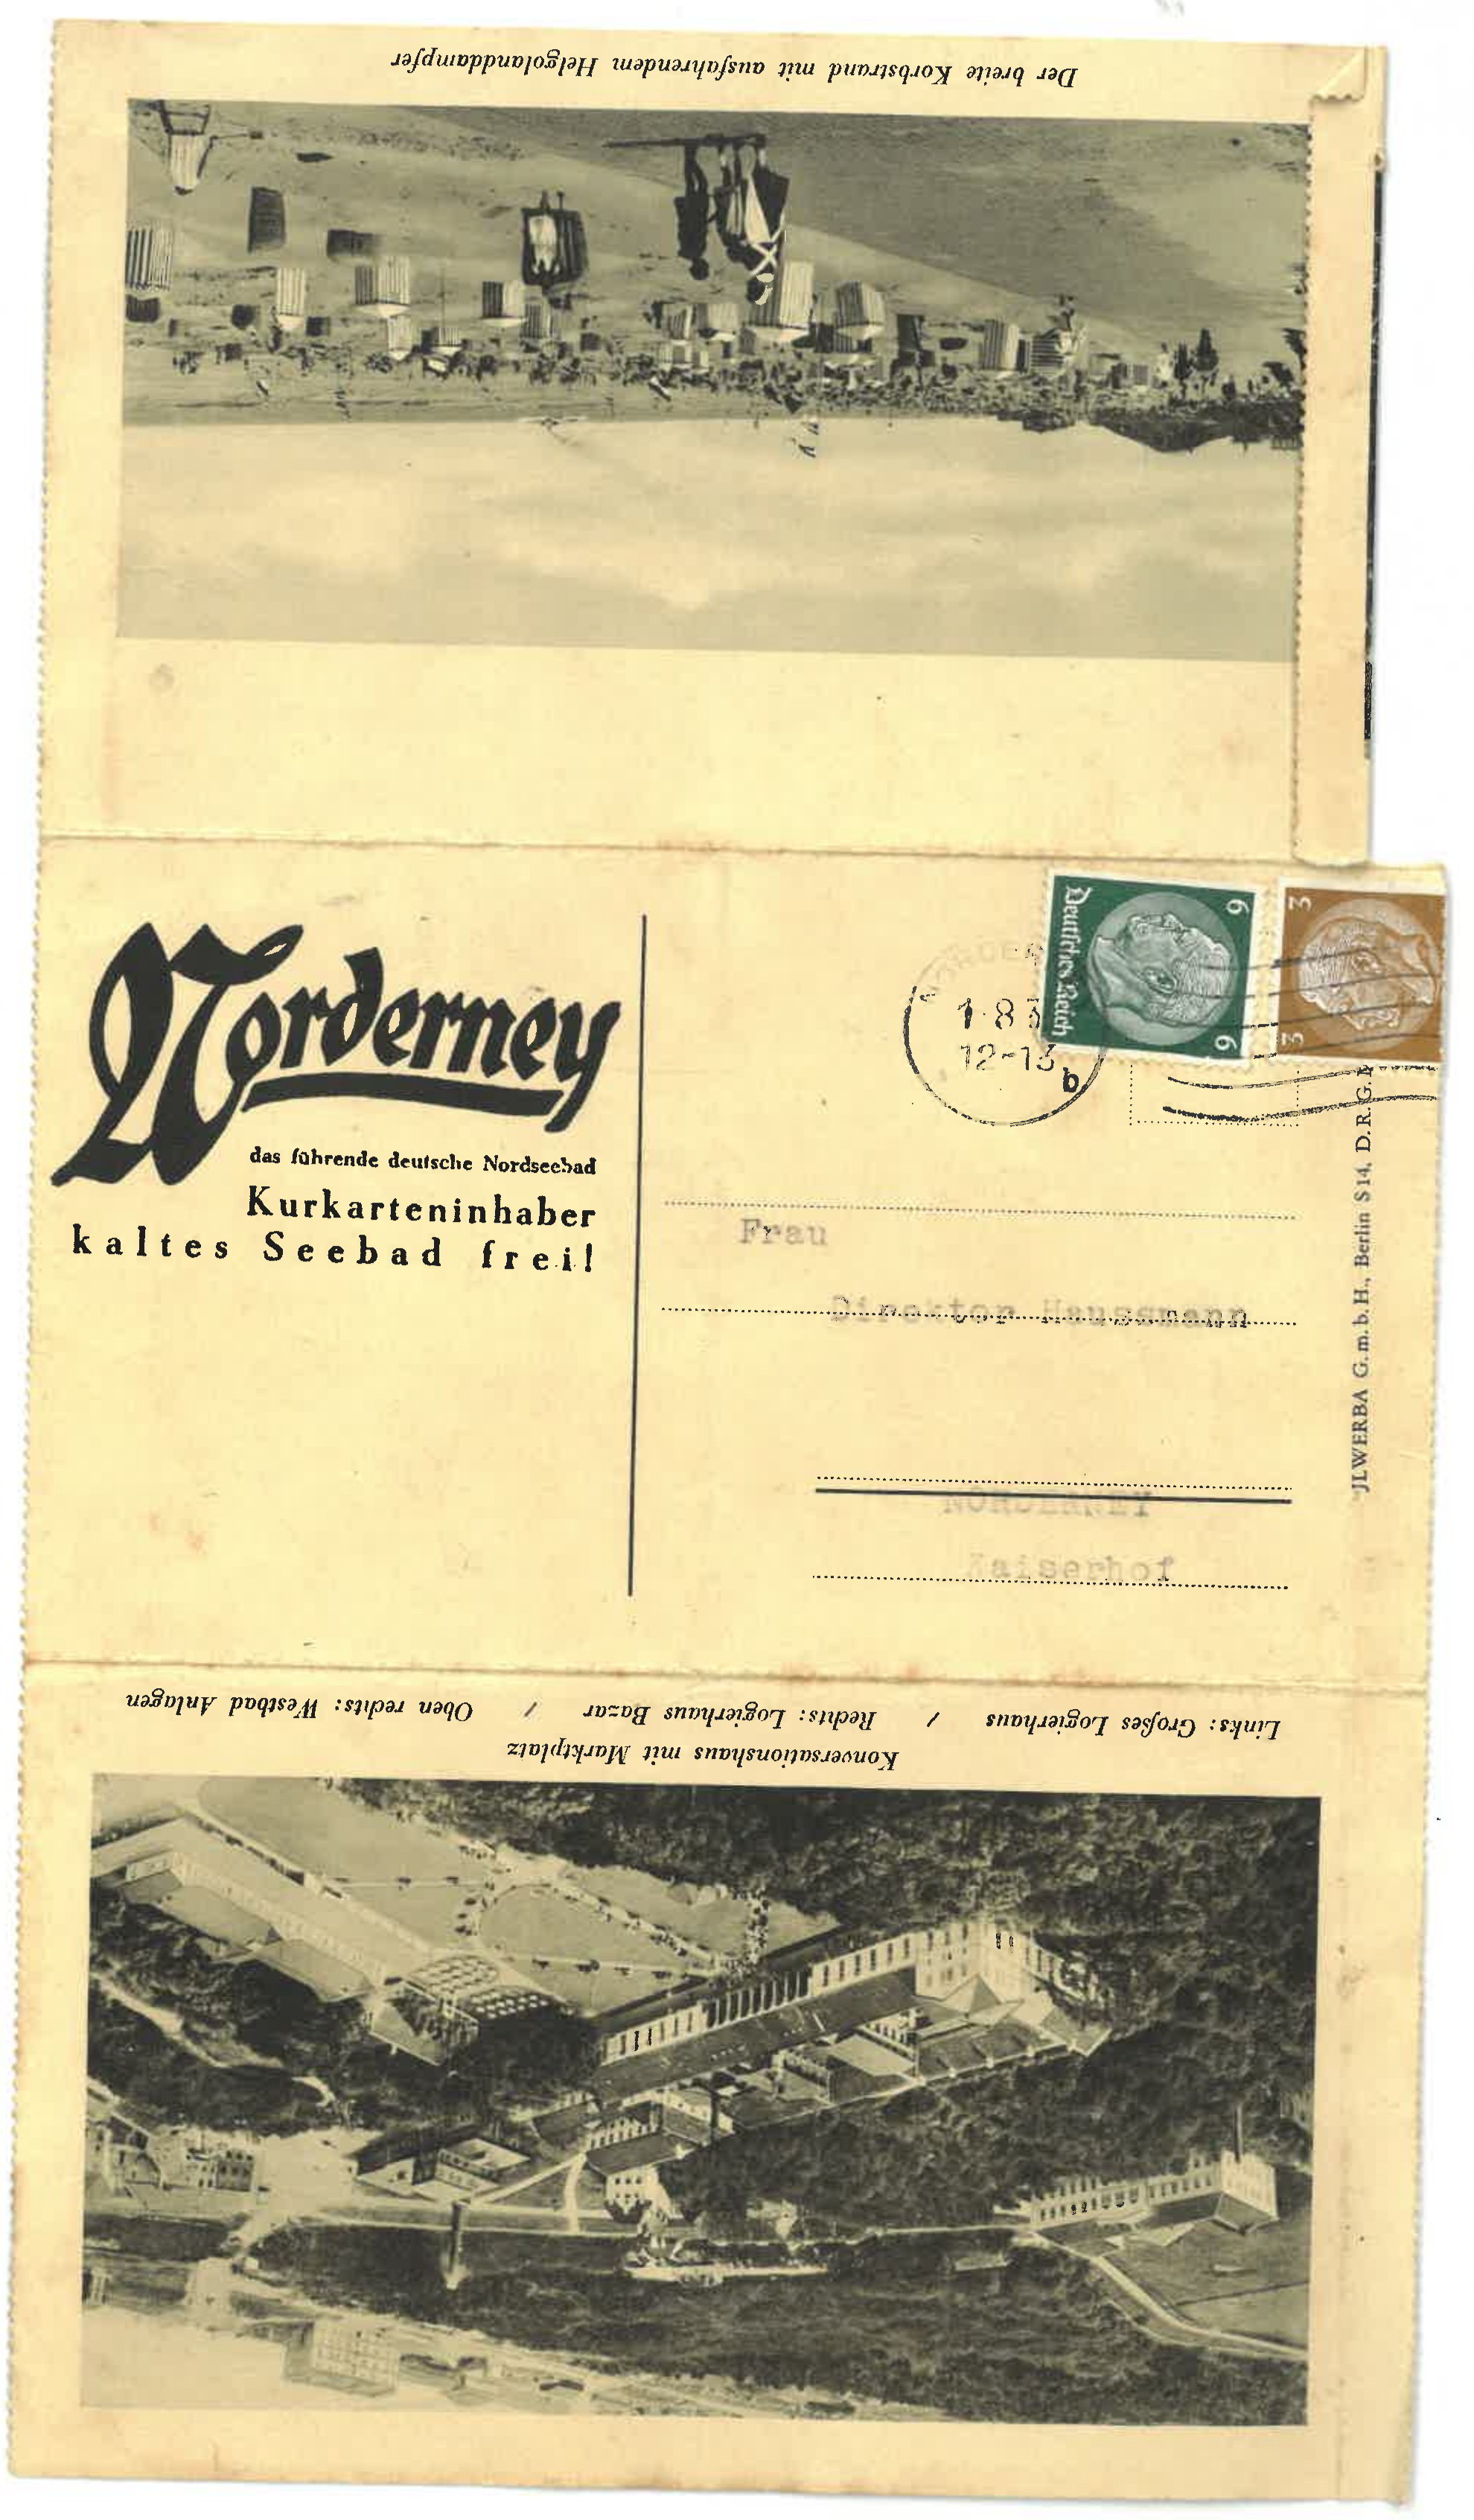 Postcard with antisemitic insults Front page